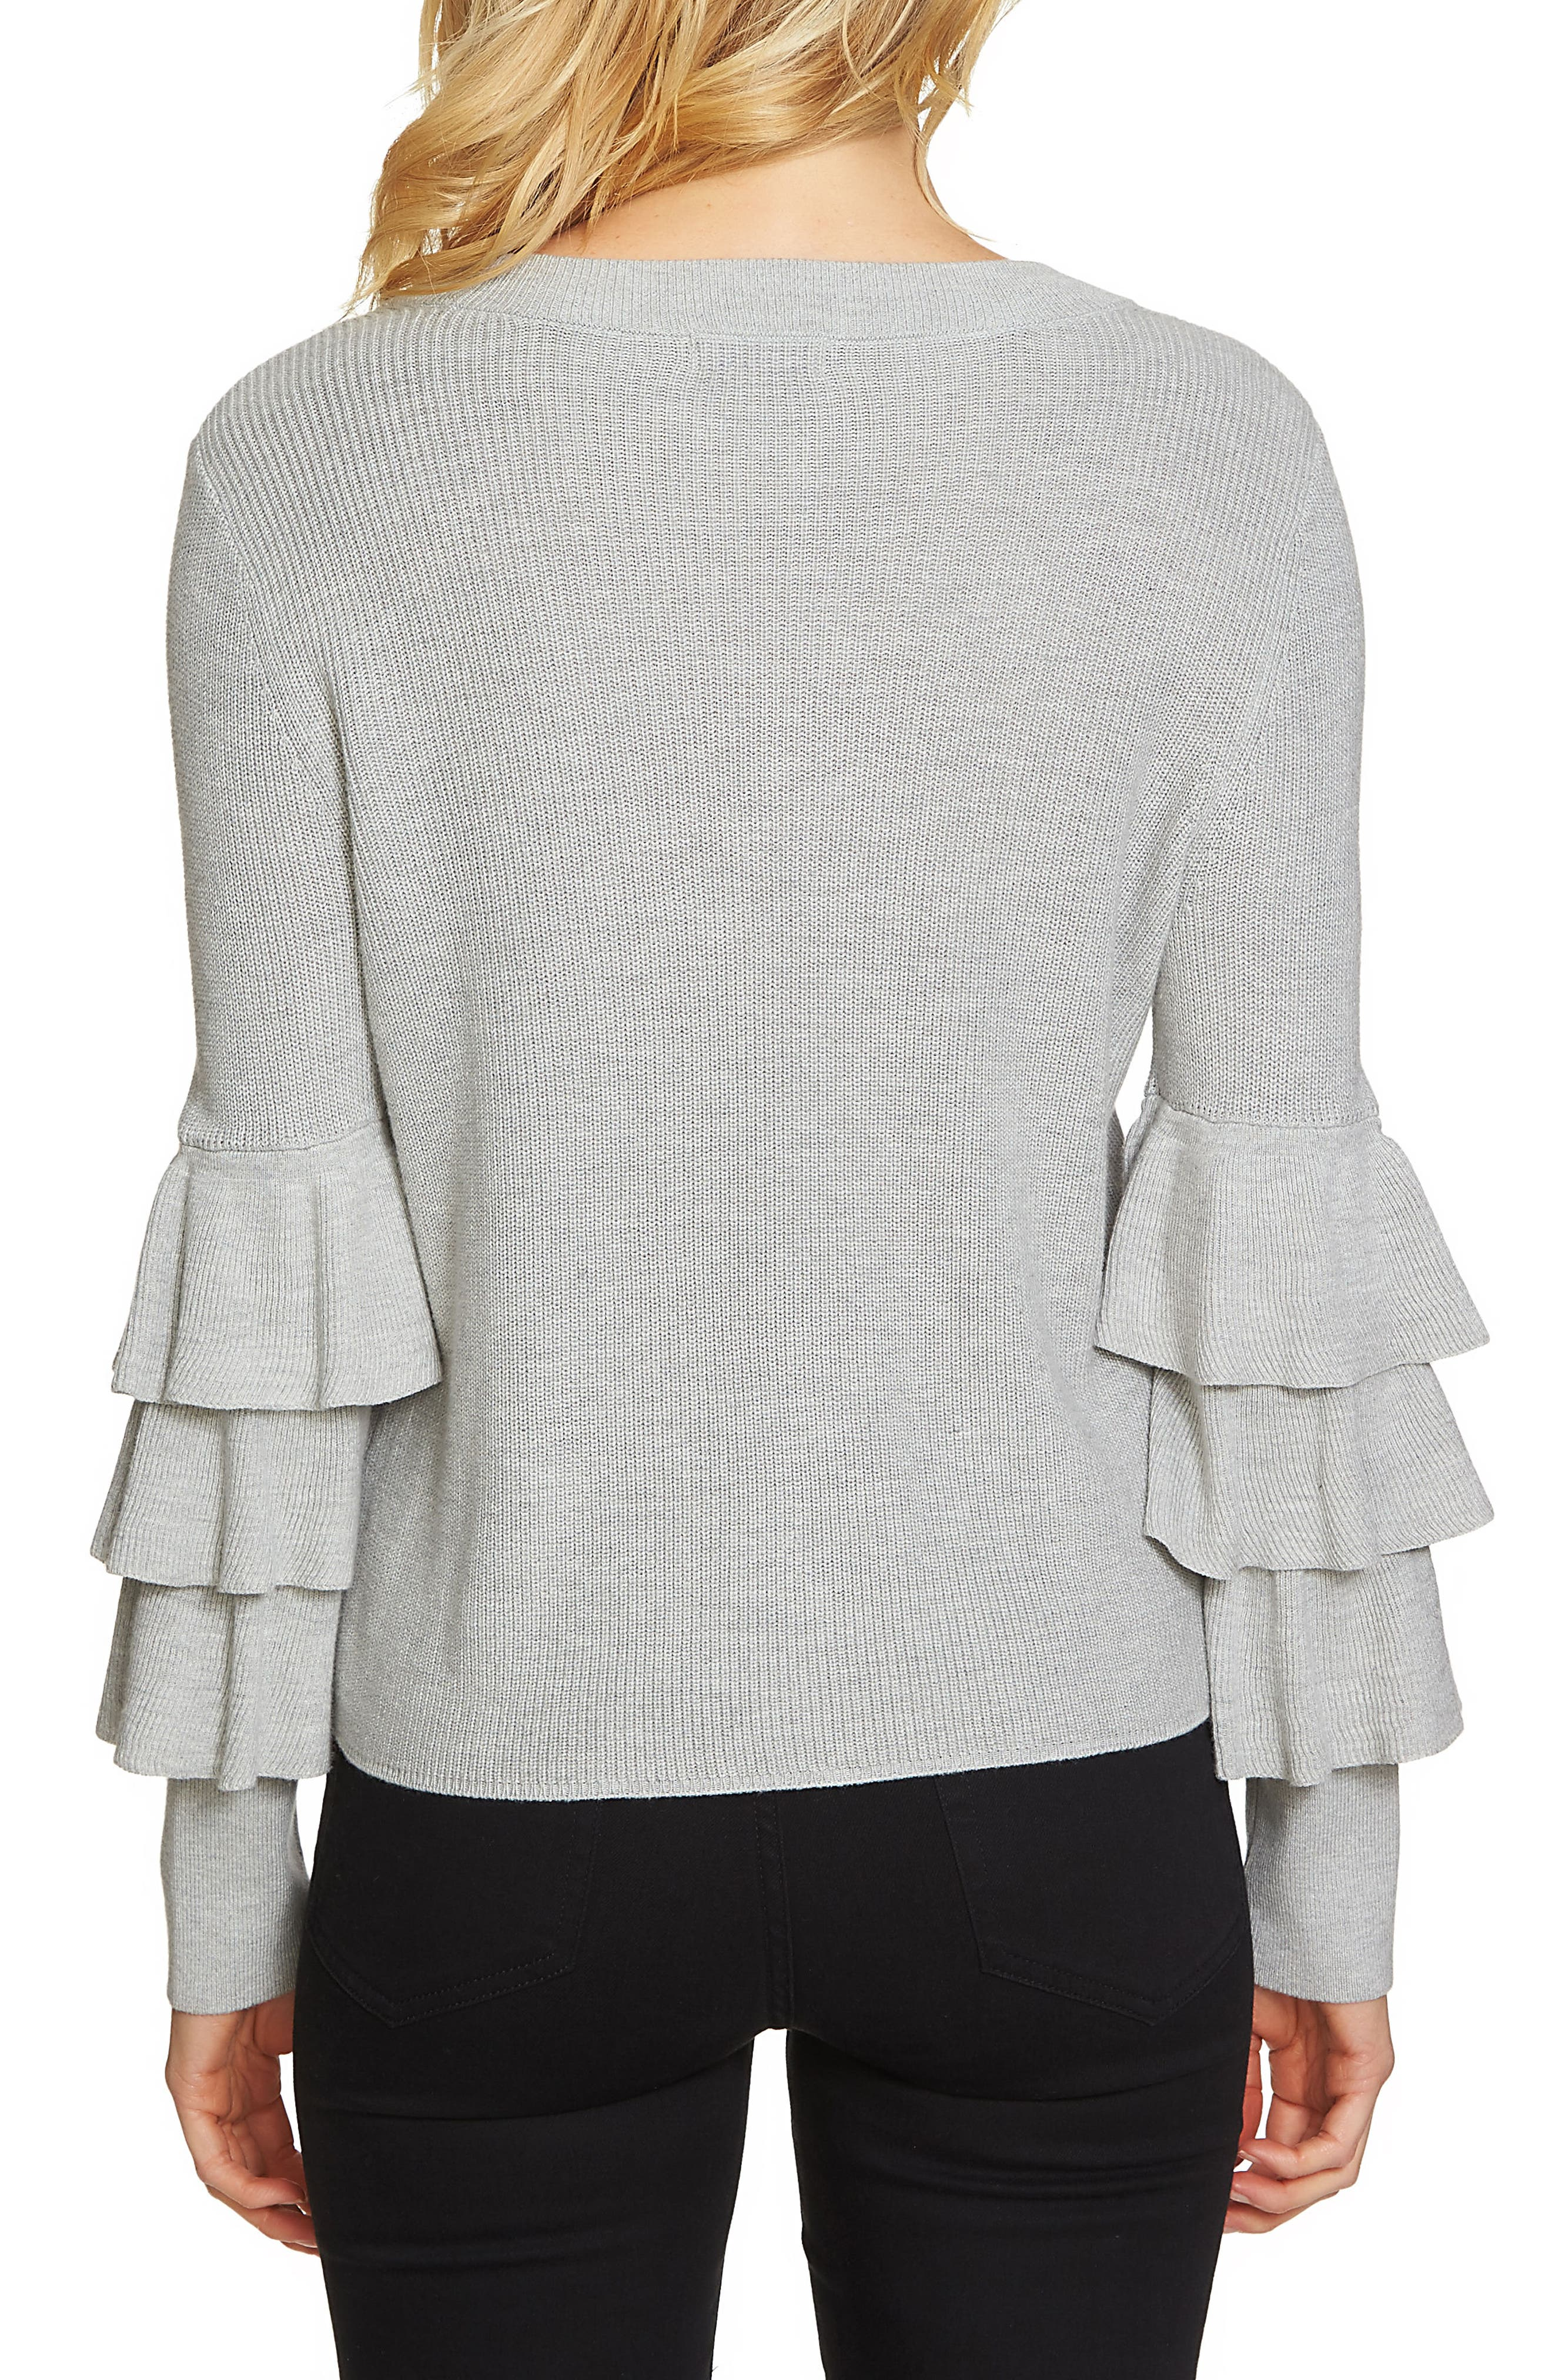 Tiered Ruffle Sleeve Sweater,                             Alternate thumbnail 2, color,                             Grey Heather